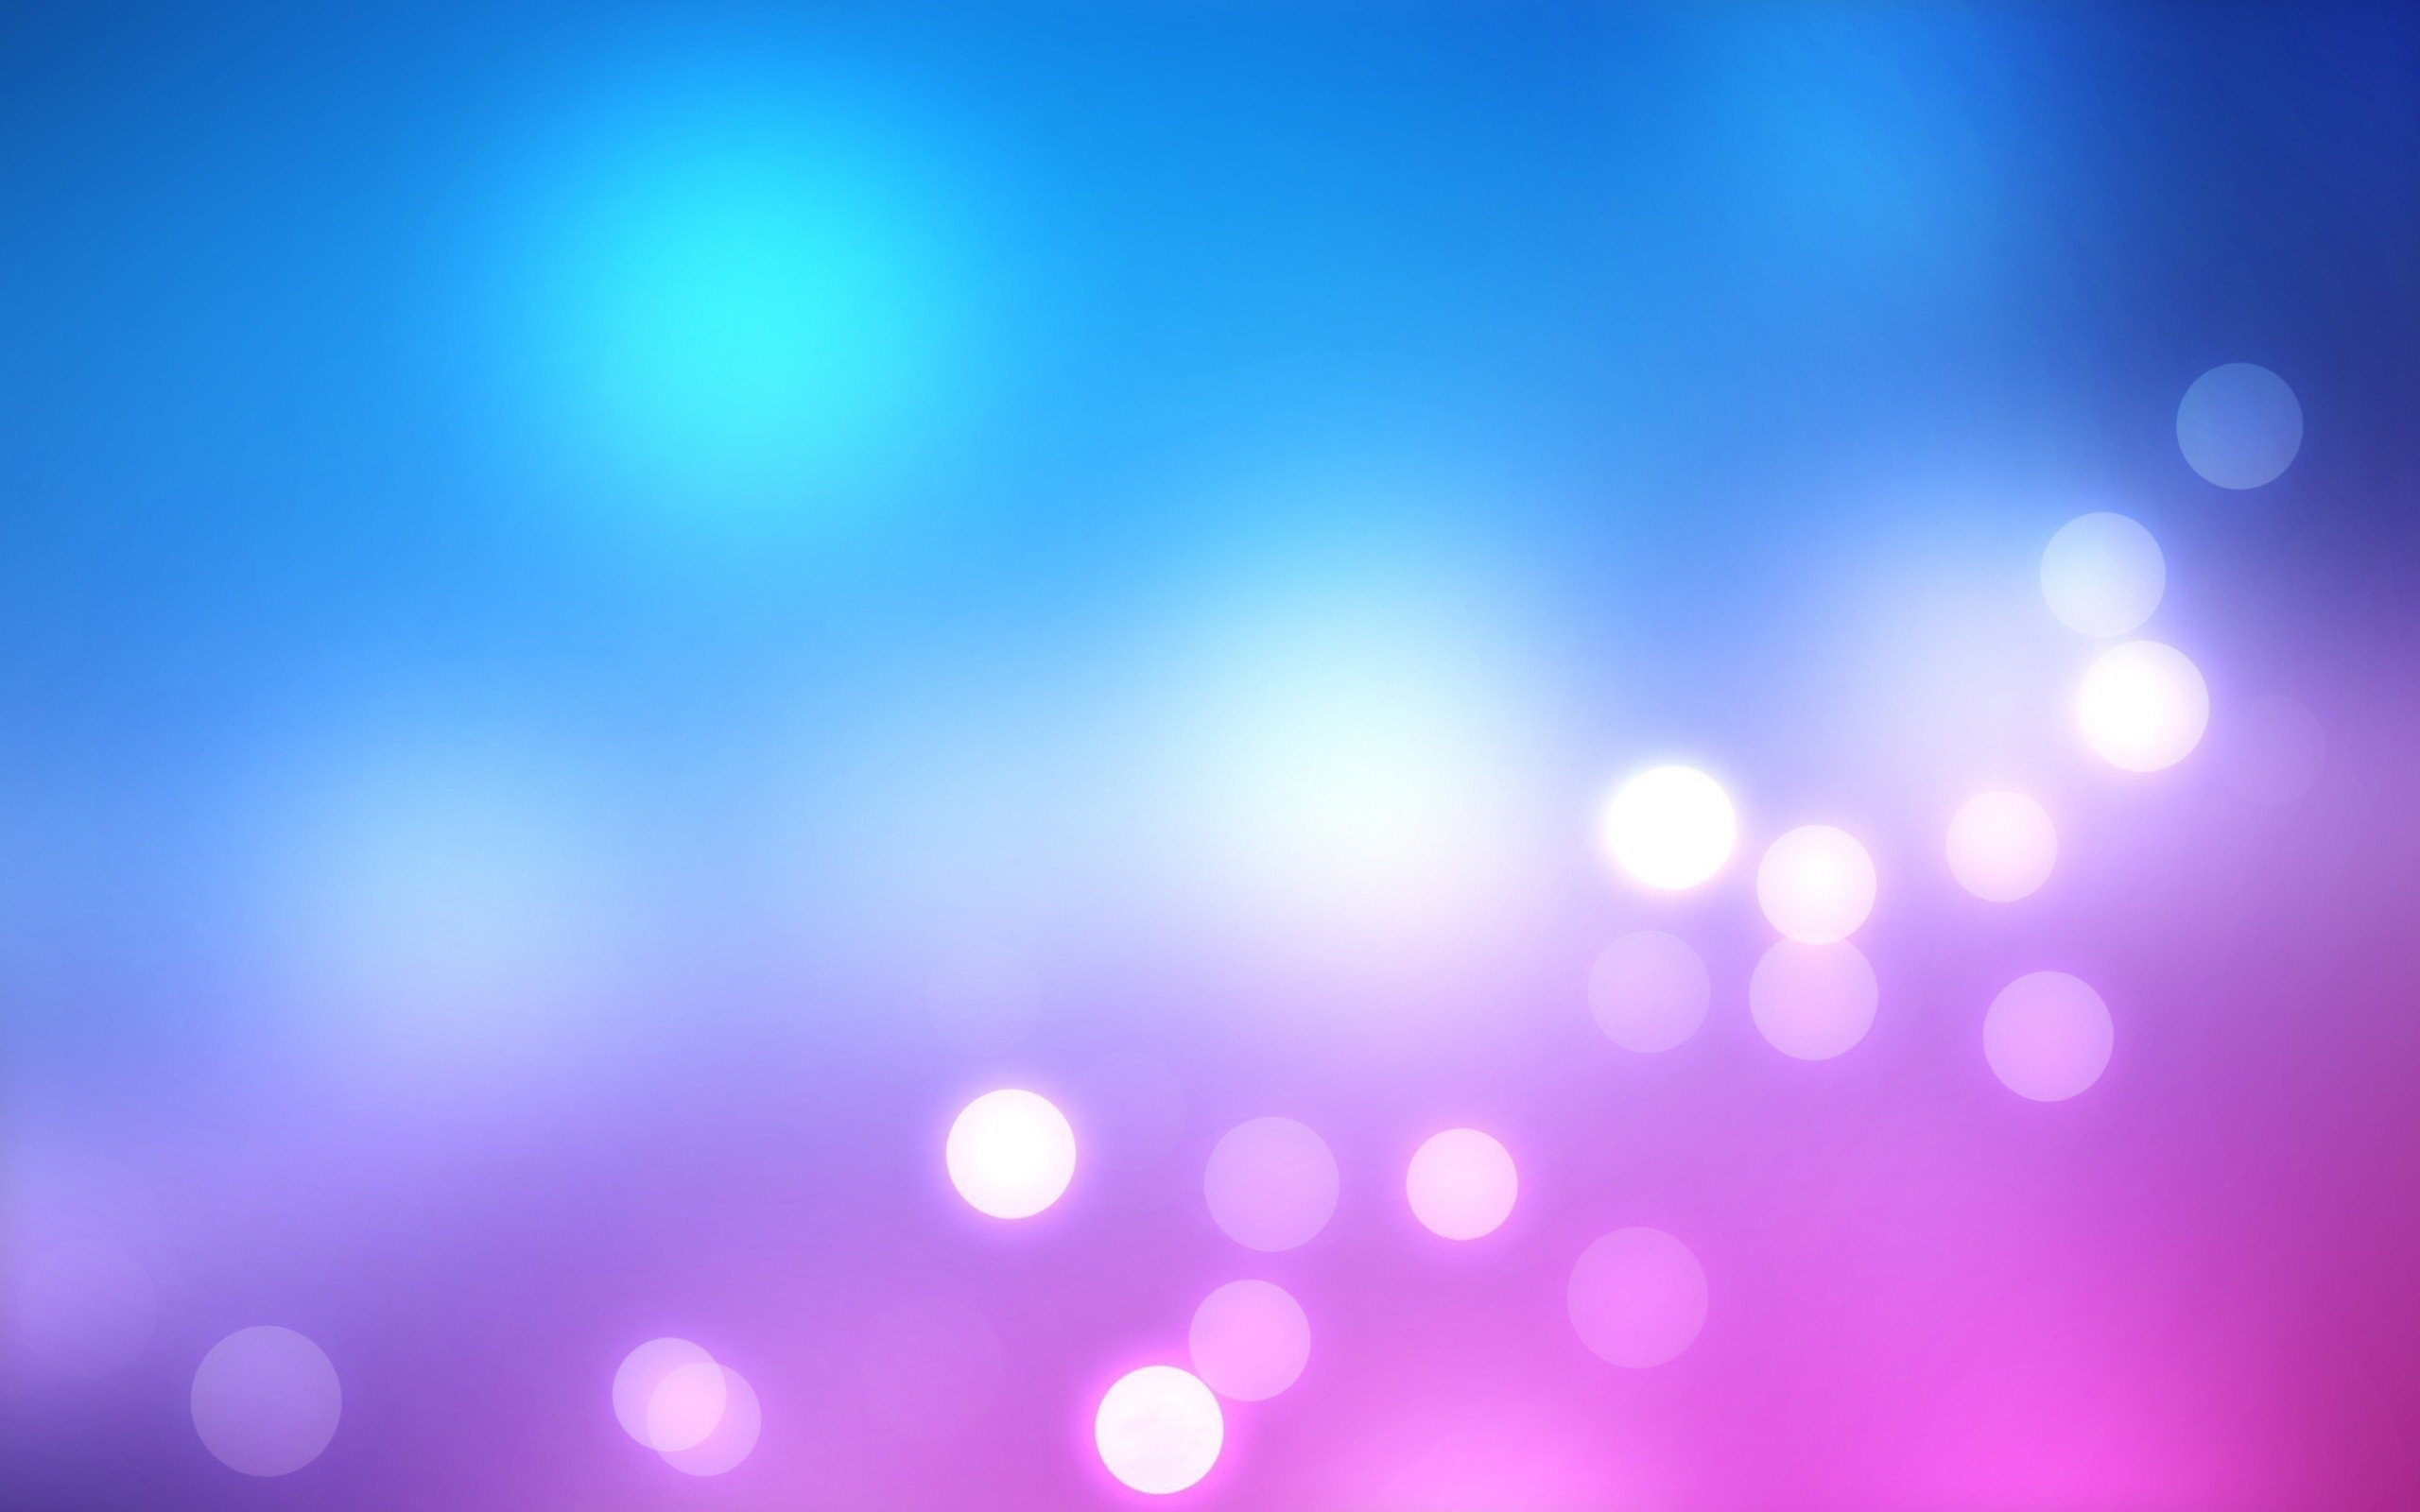 10 New Blue And Pink Backgrounds Full Hd 19201080 For Pc Background